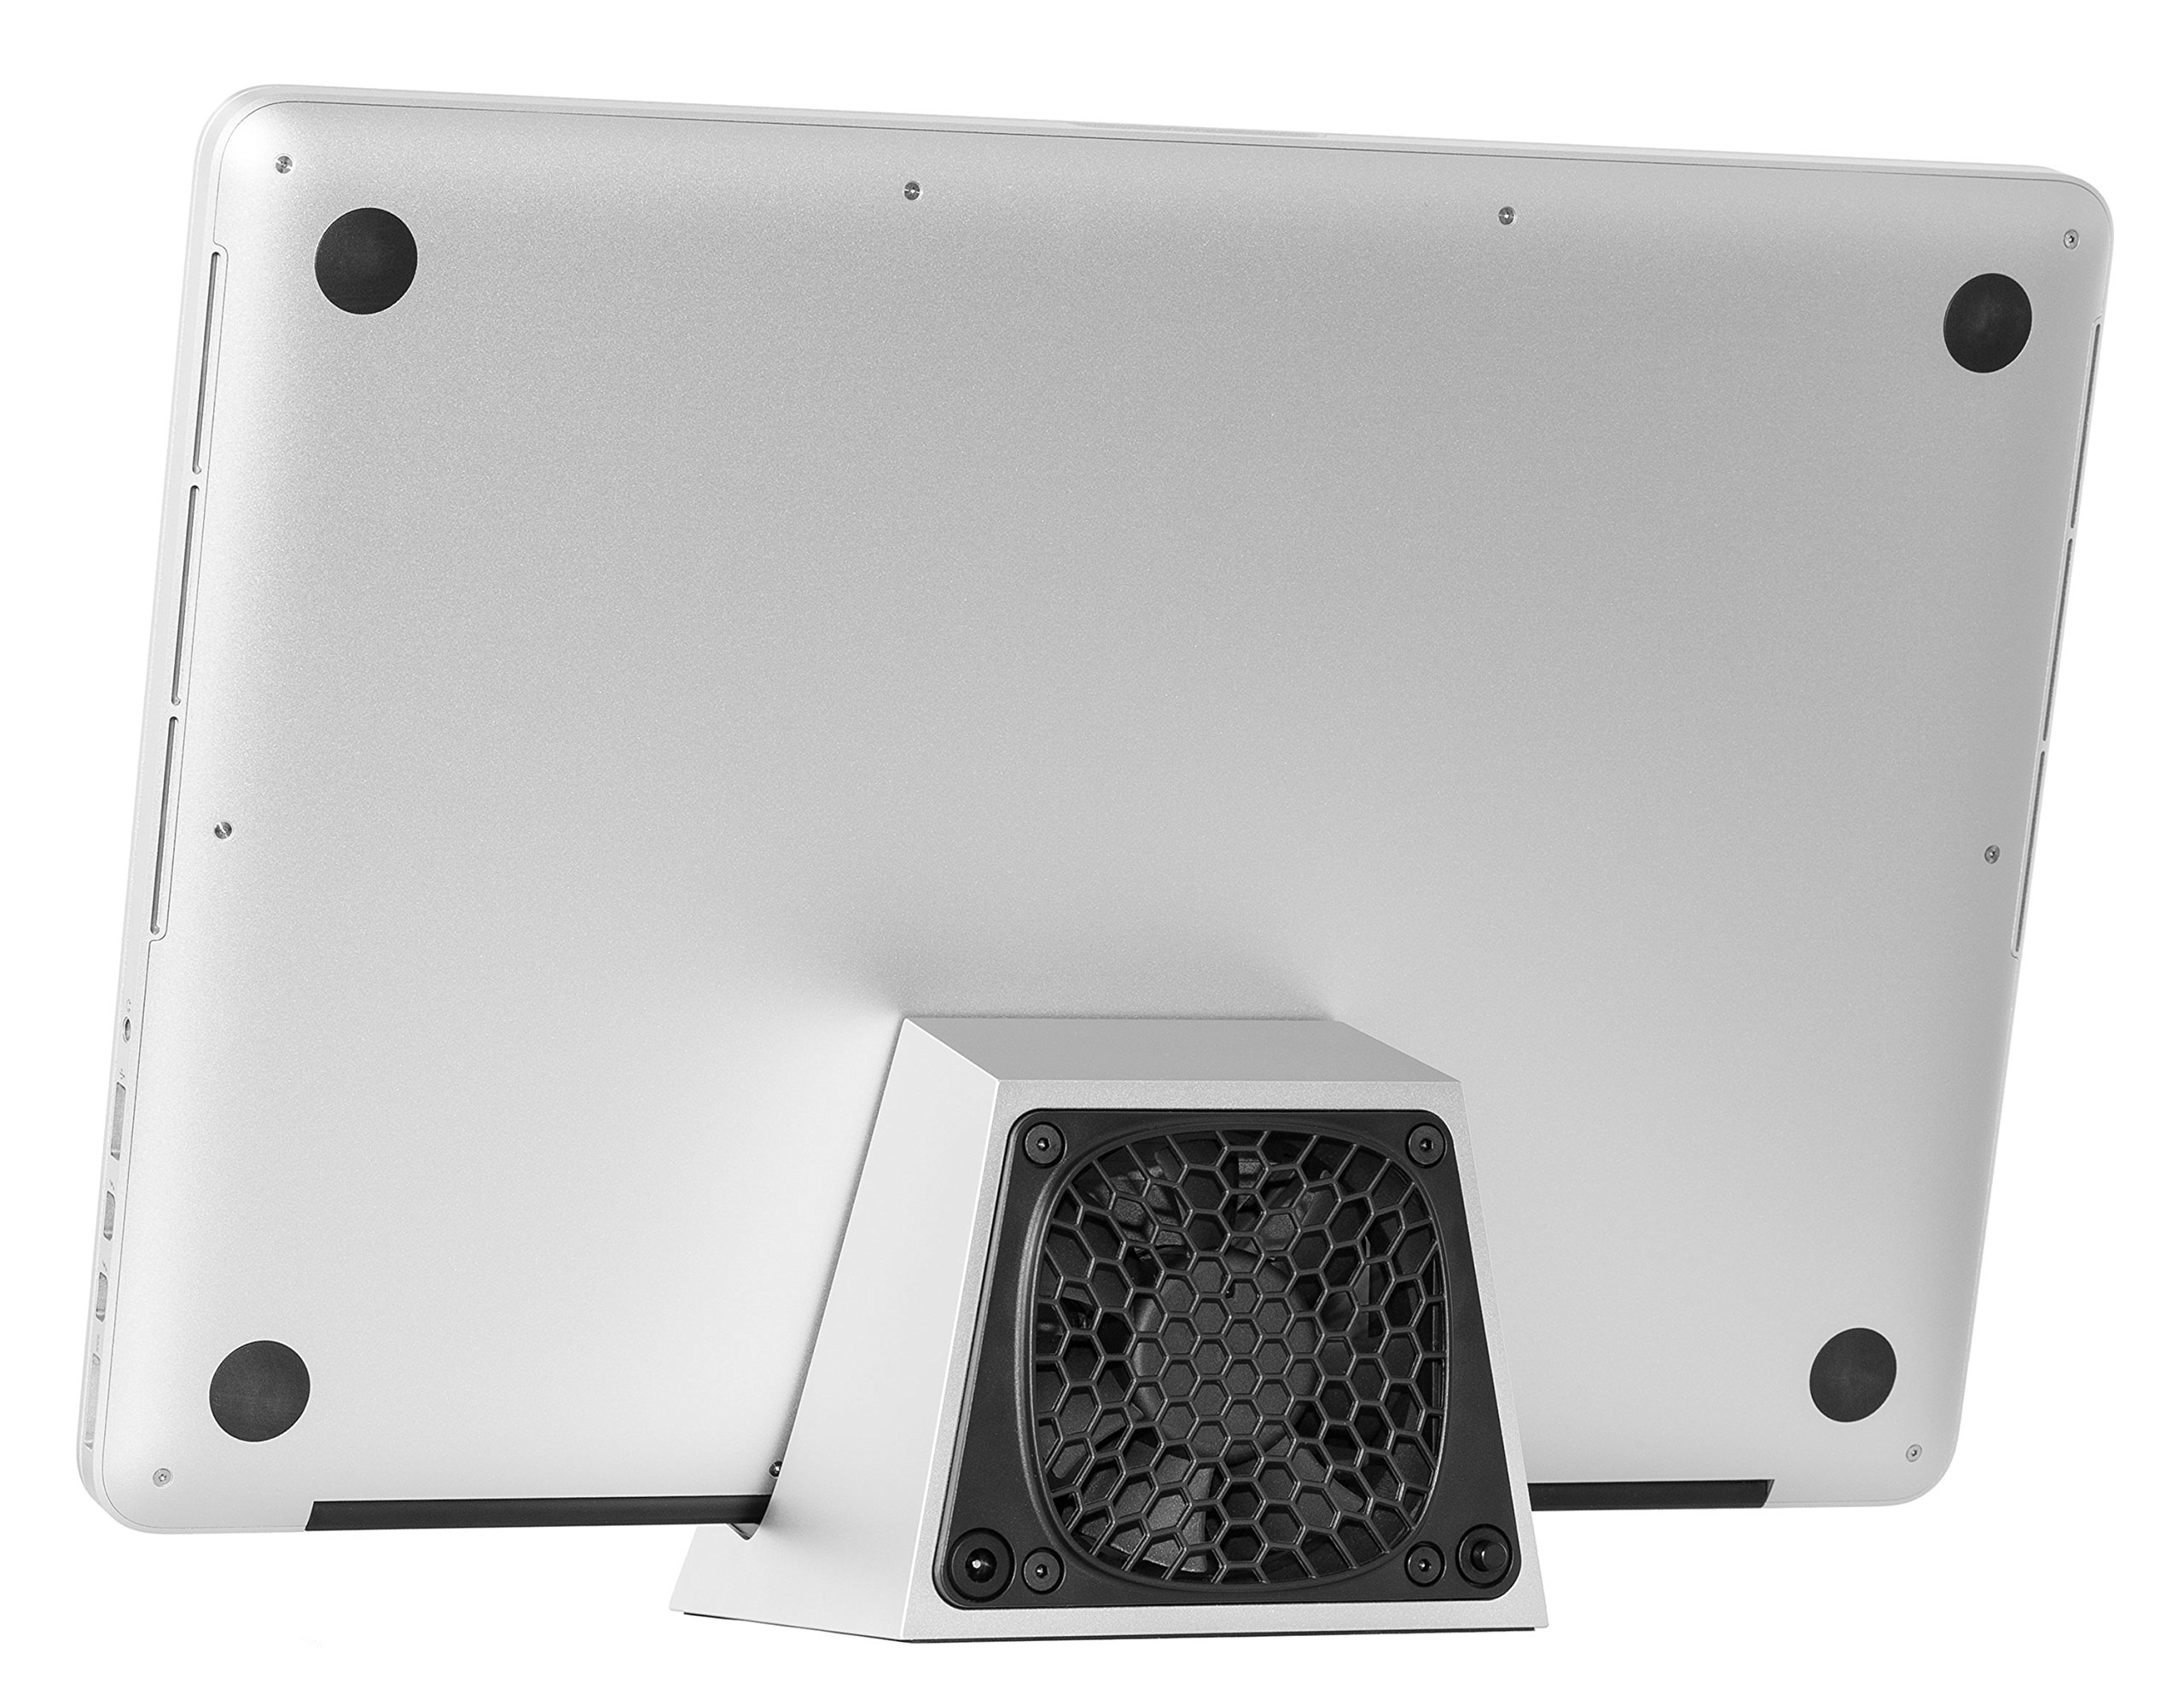 SVALT D2 High-Performance Cooling Dock for Apple Retina MacBook Pro and MacBook Air laptops by SVALT (Image #1)